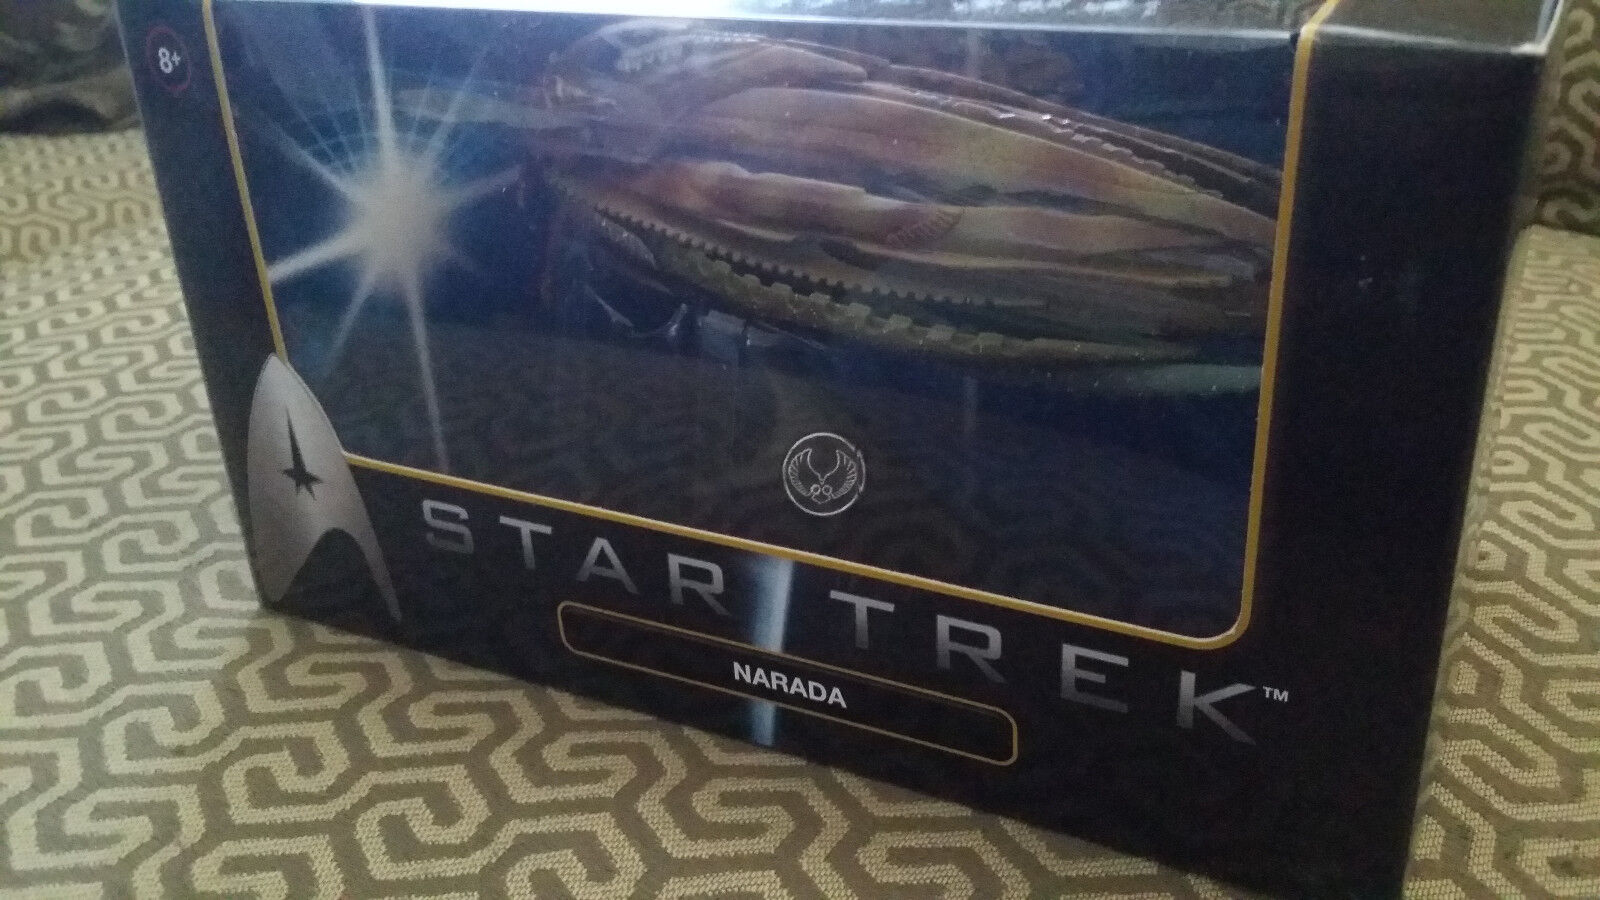 Neue hot wheels star trek narada '